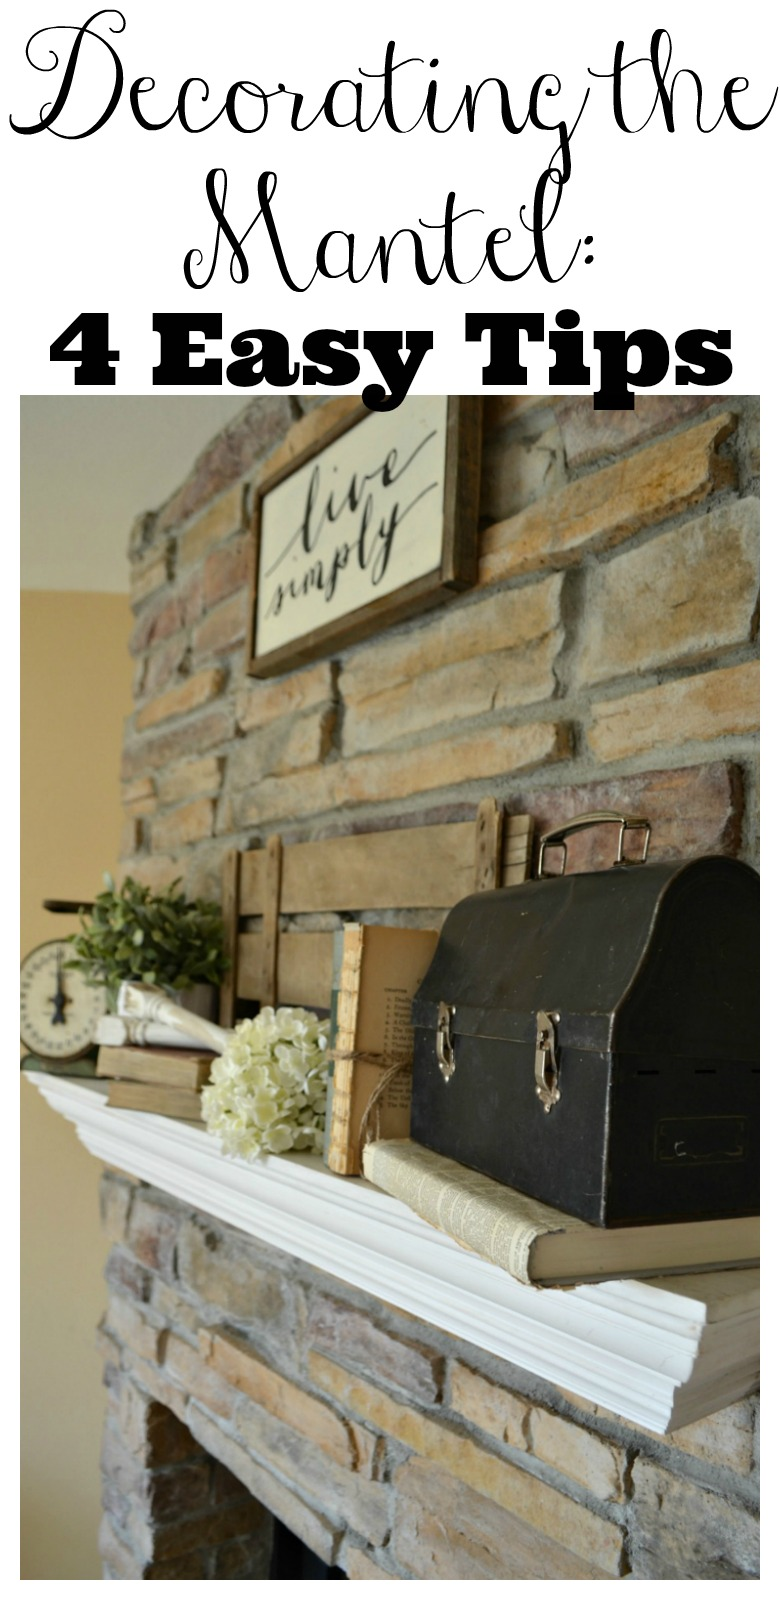 4 Easy Tips for Decorating the Mantel--Vintage Decor